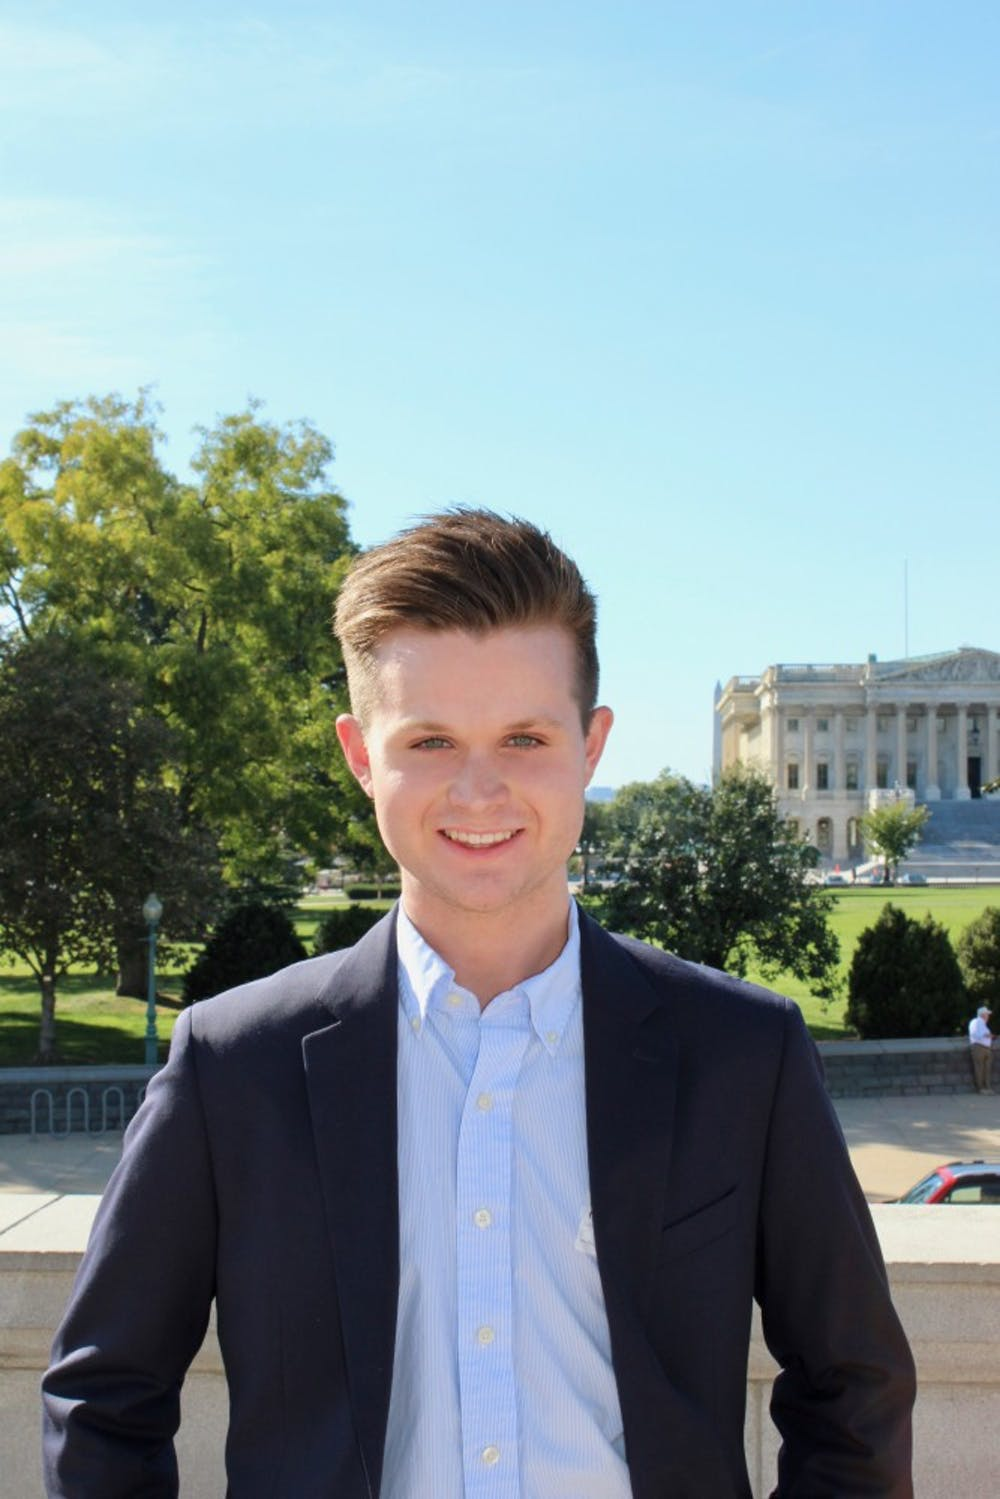 UNC Student Government holds first senate elections by major